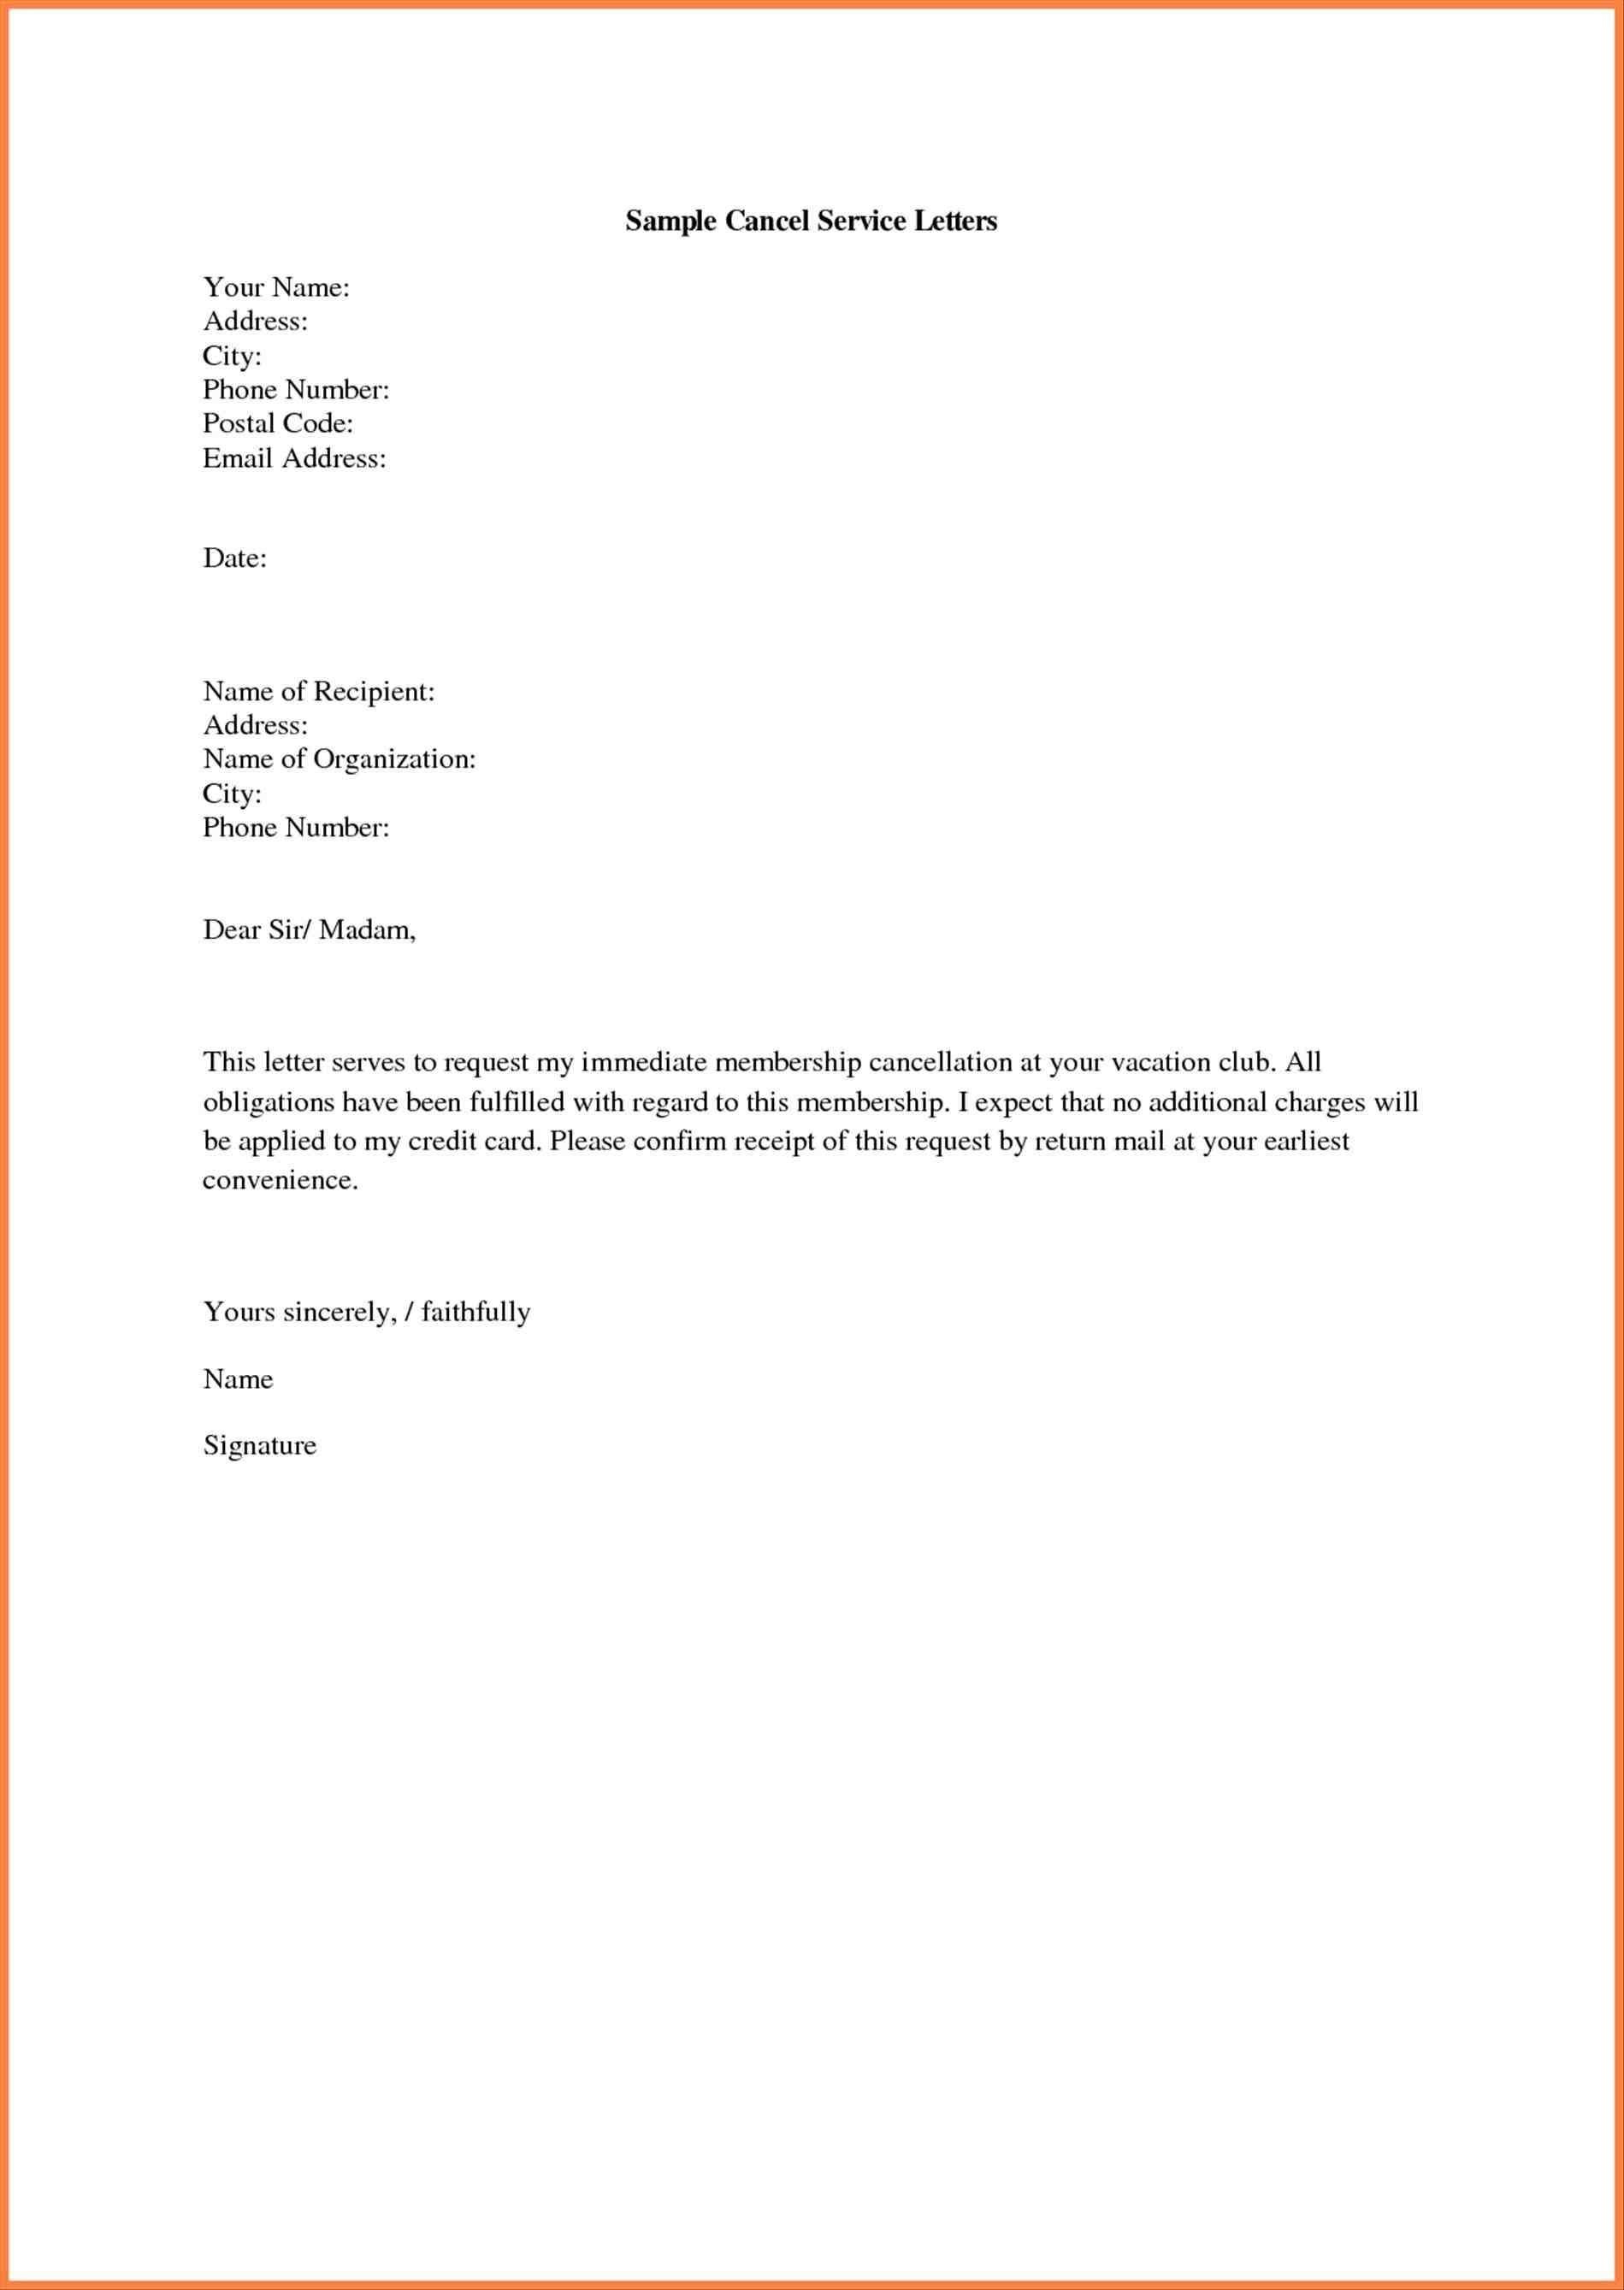 Gym Membership Cancellation Letter Examples - Daily Roabox ...